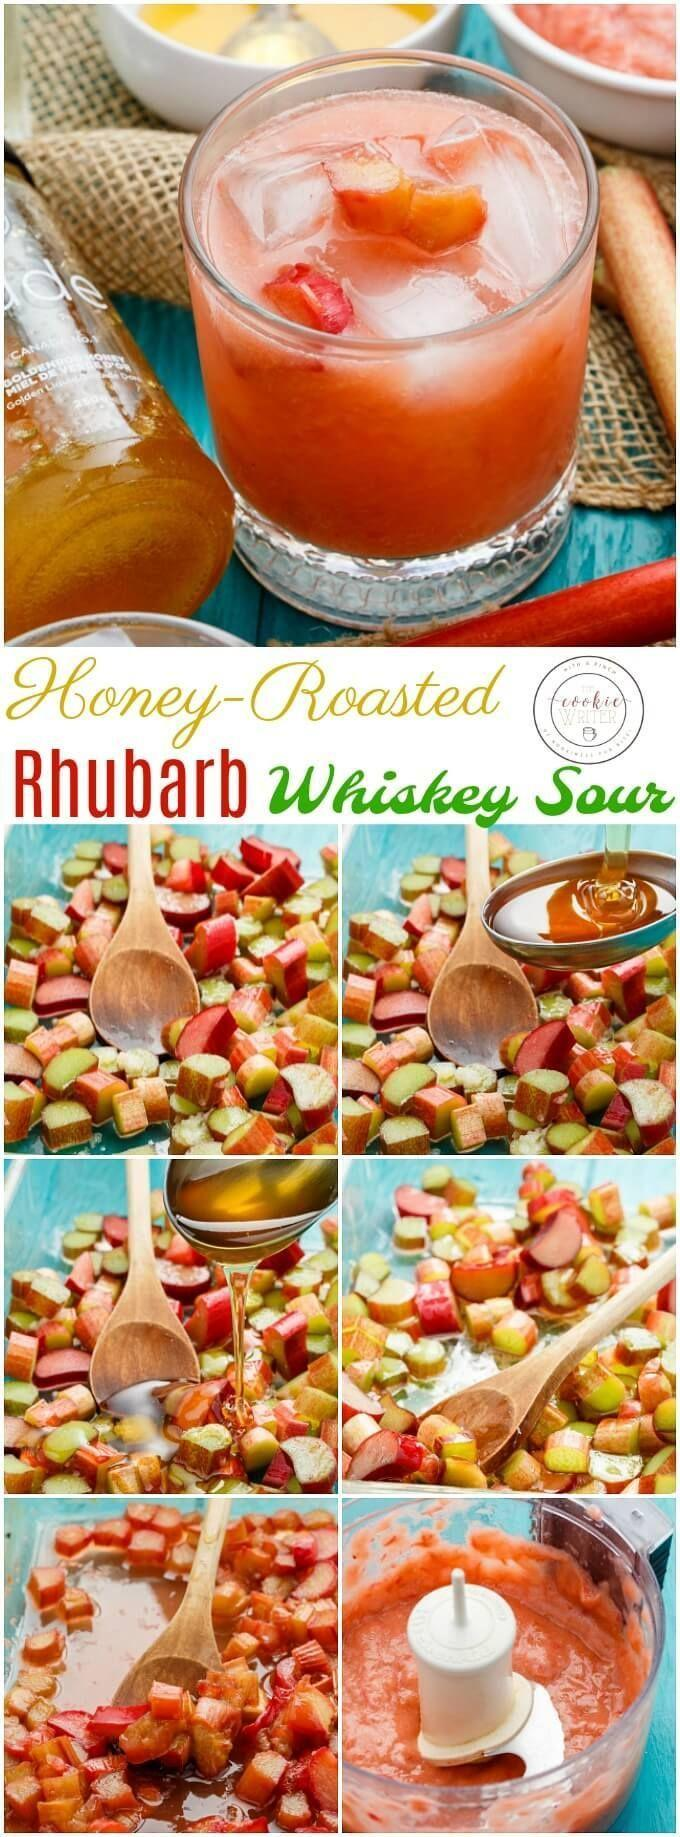 Wedding - Honey-Roasted Rhubarb Whiskey Sour